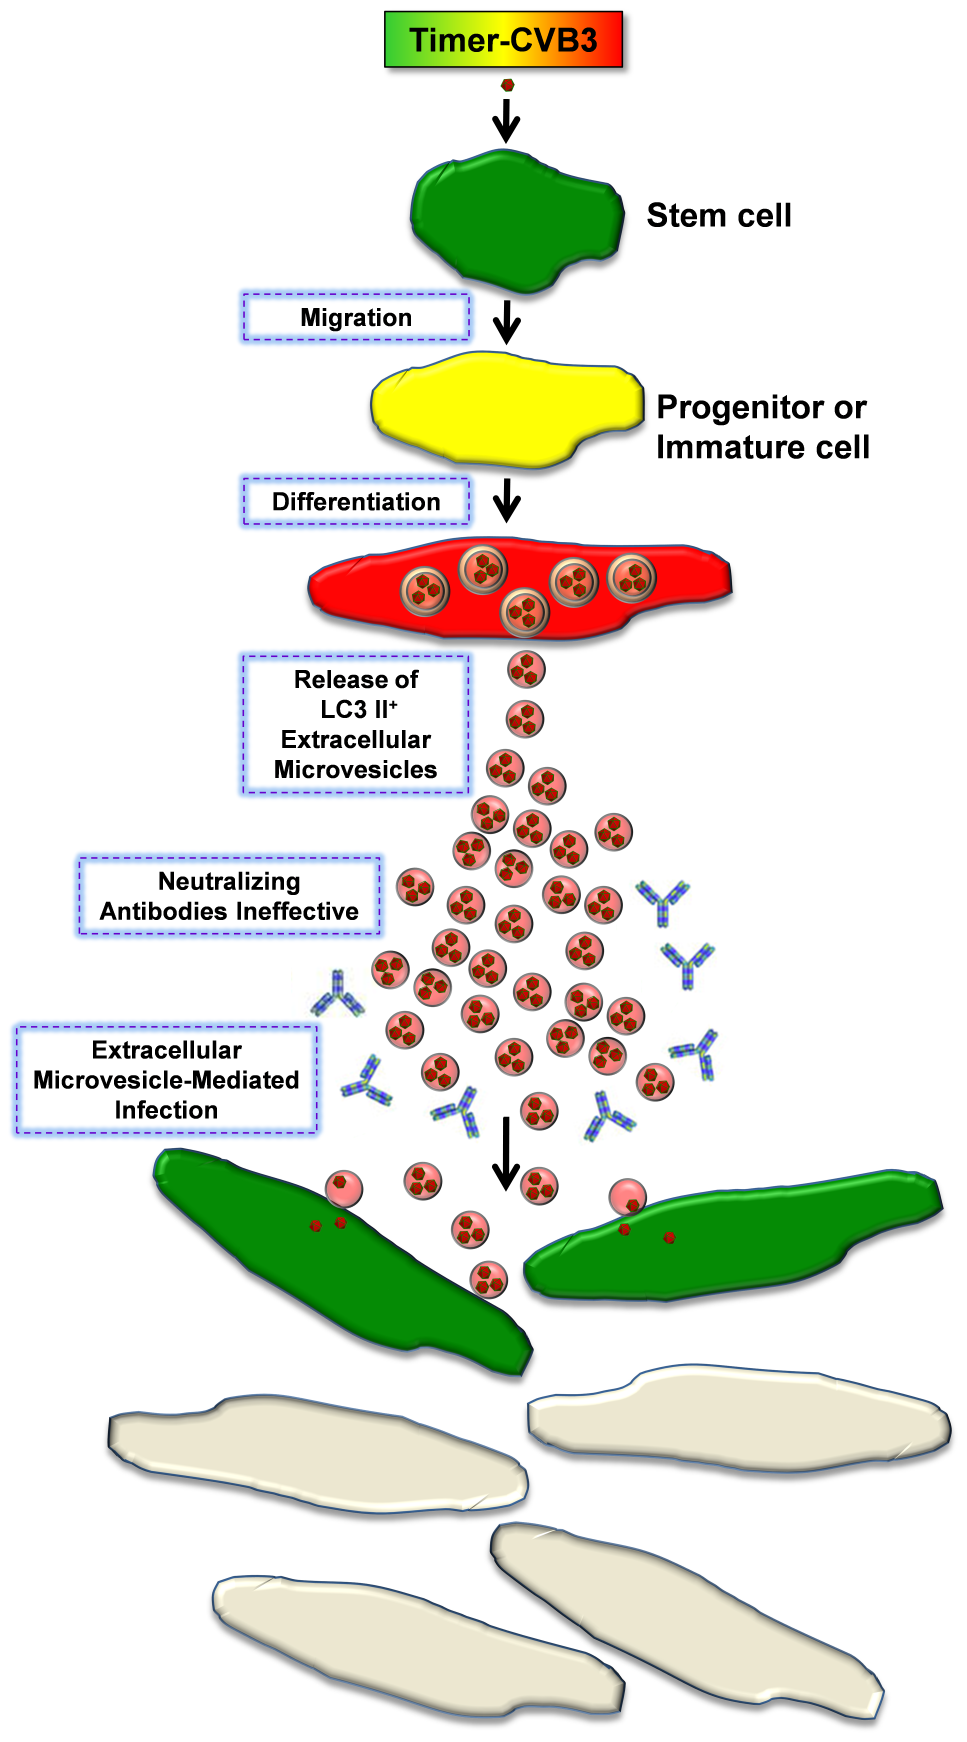 Model of Timer-CVB3 dissemination by EMVs triggered following stem cell migration and differentiation.